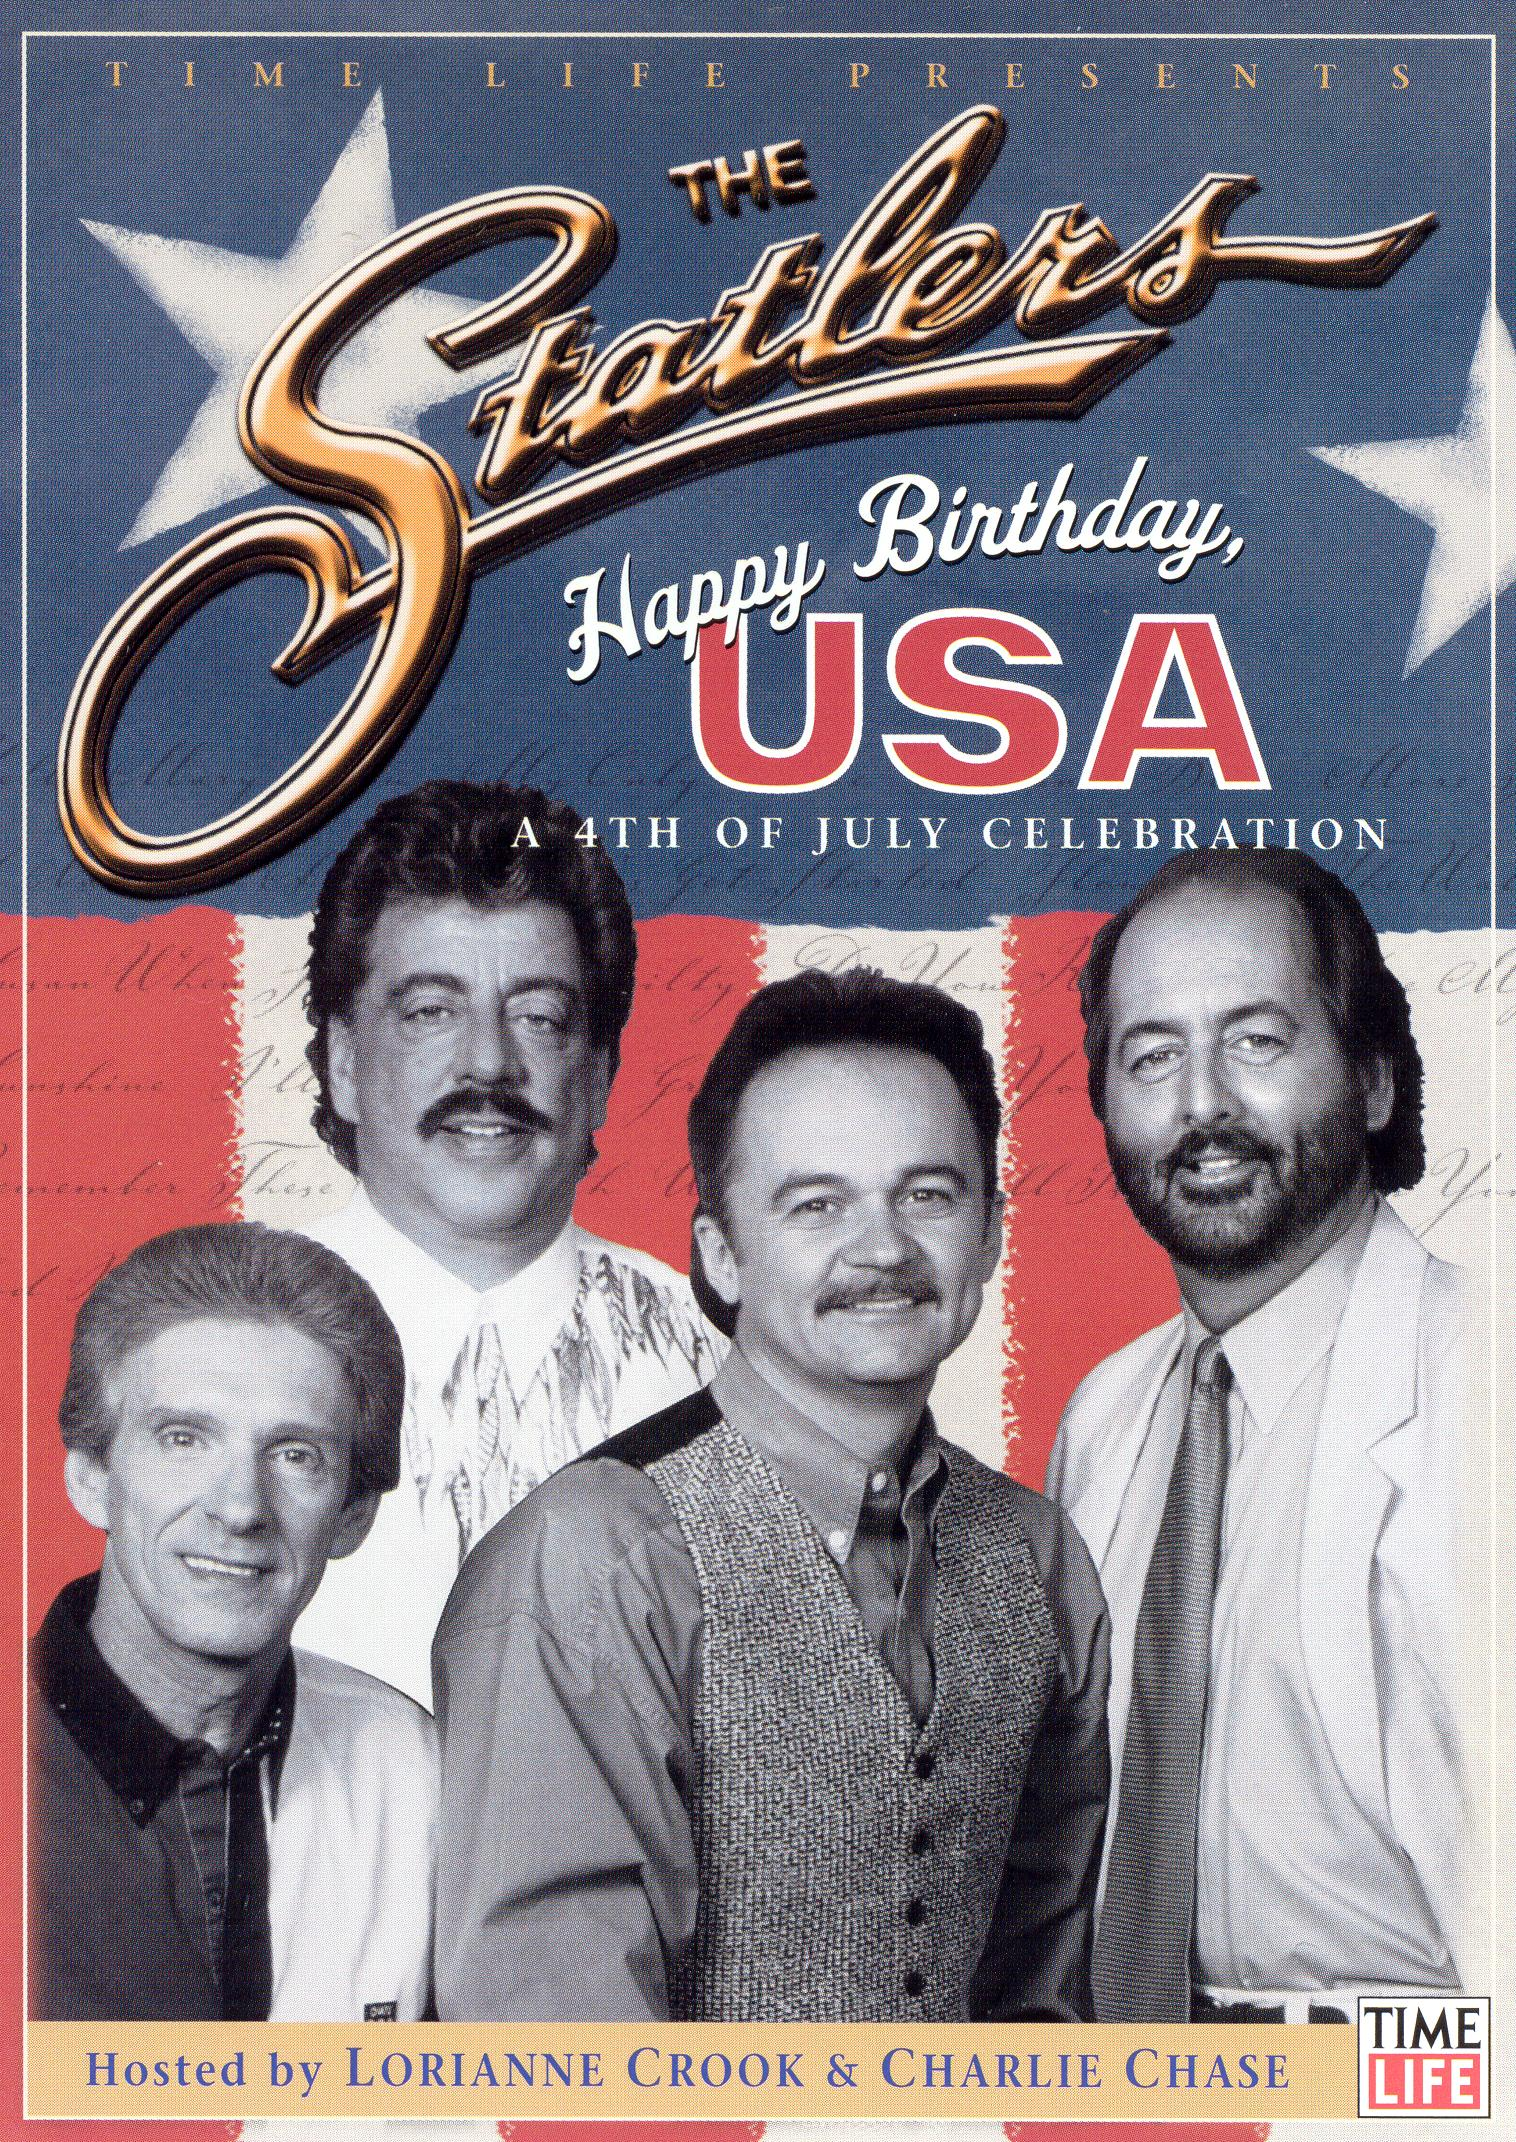 The Statler Brothers: A 4th of July Celebration